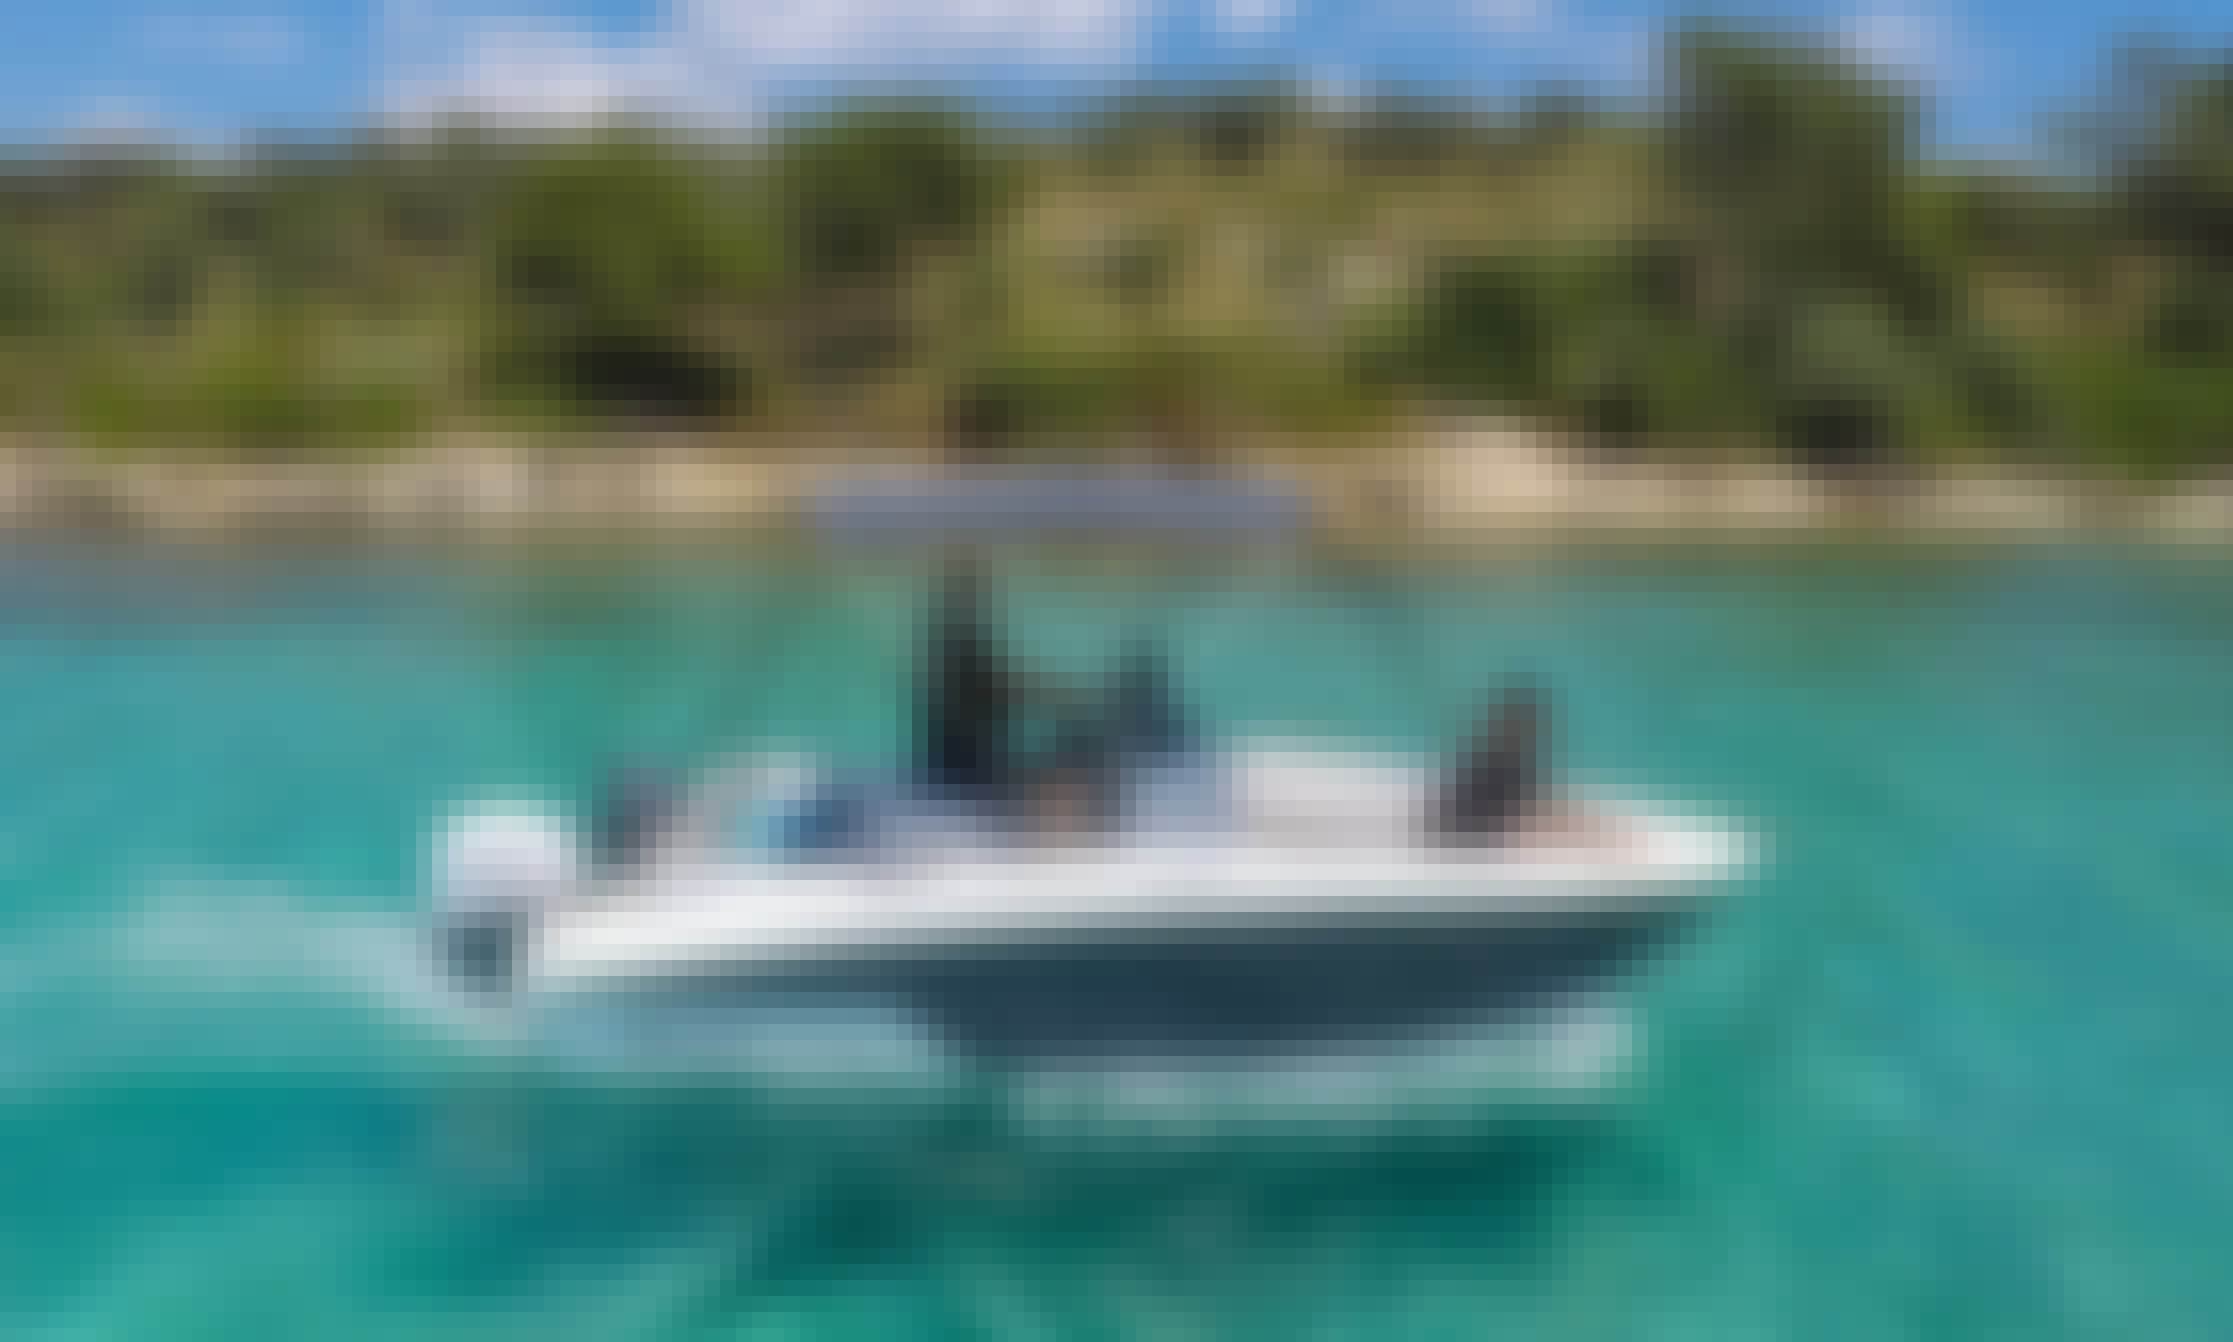 2020 Compass 168cc for Rent in Chalkidiki, Greece